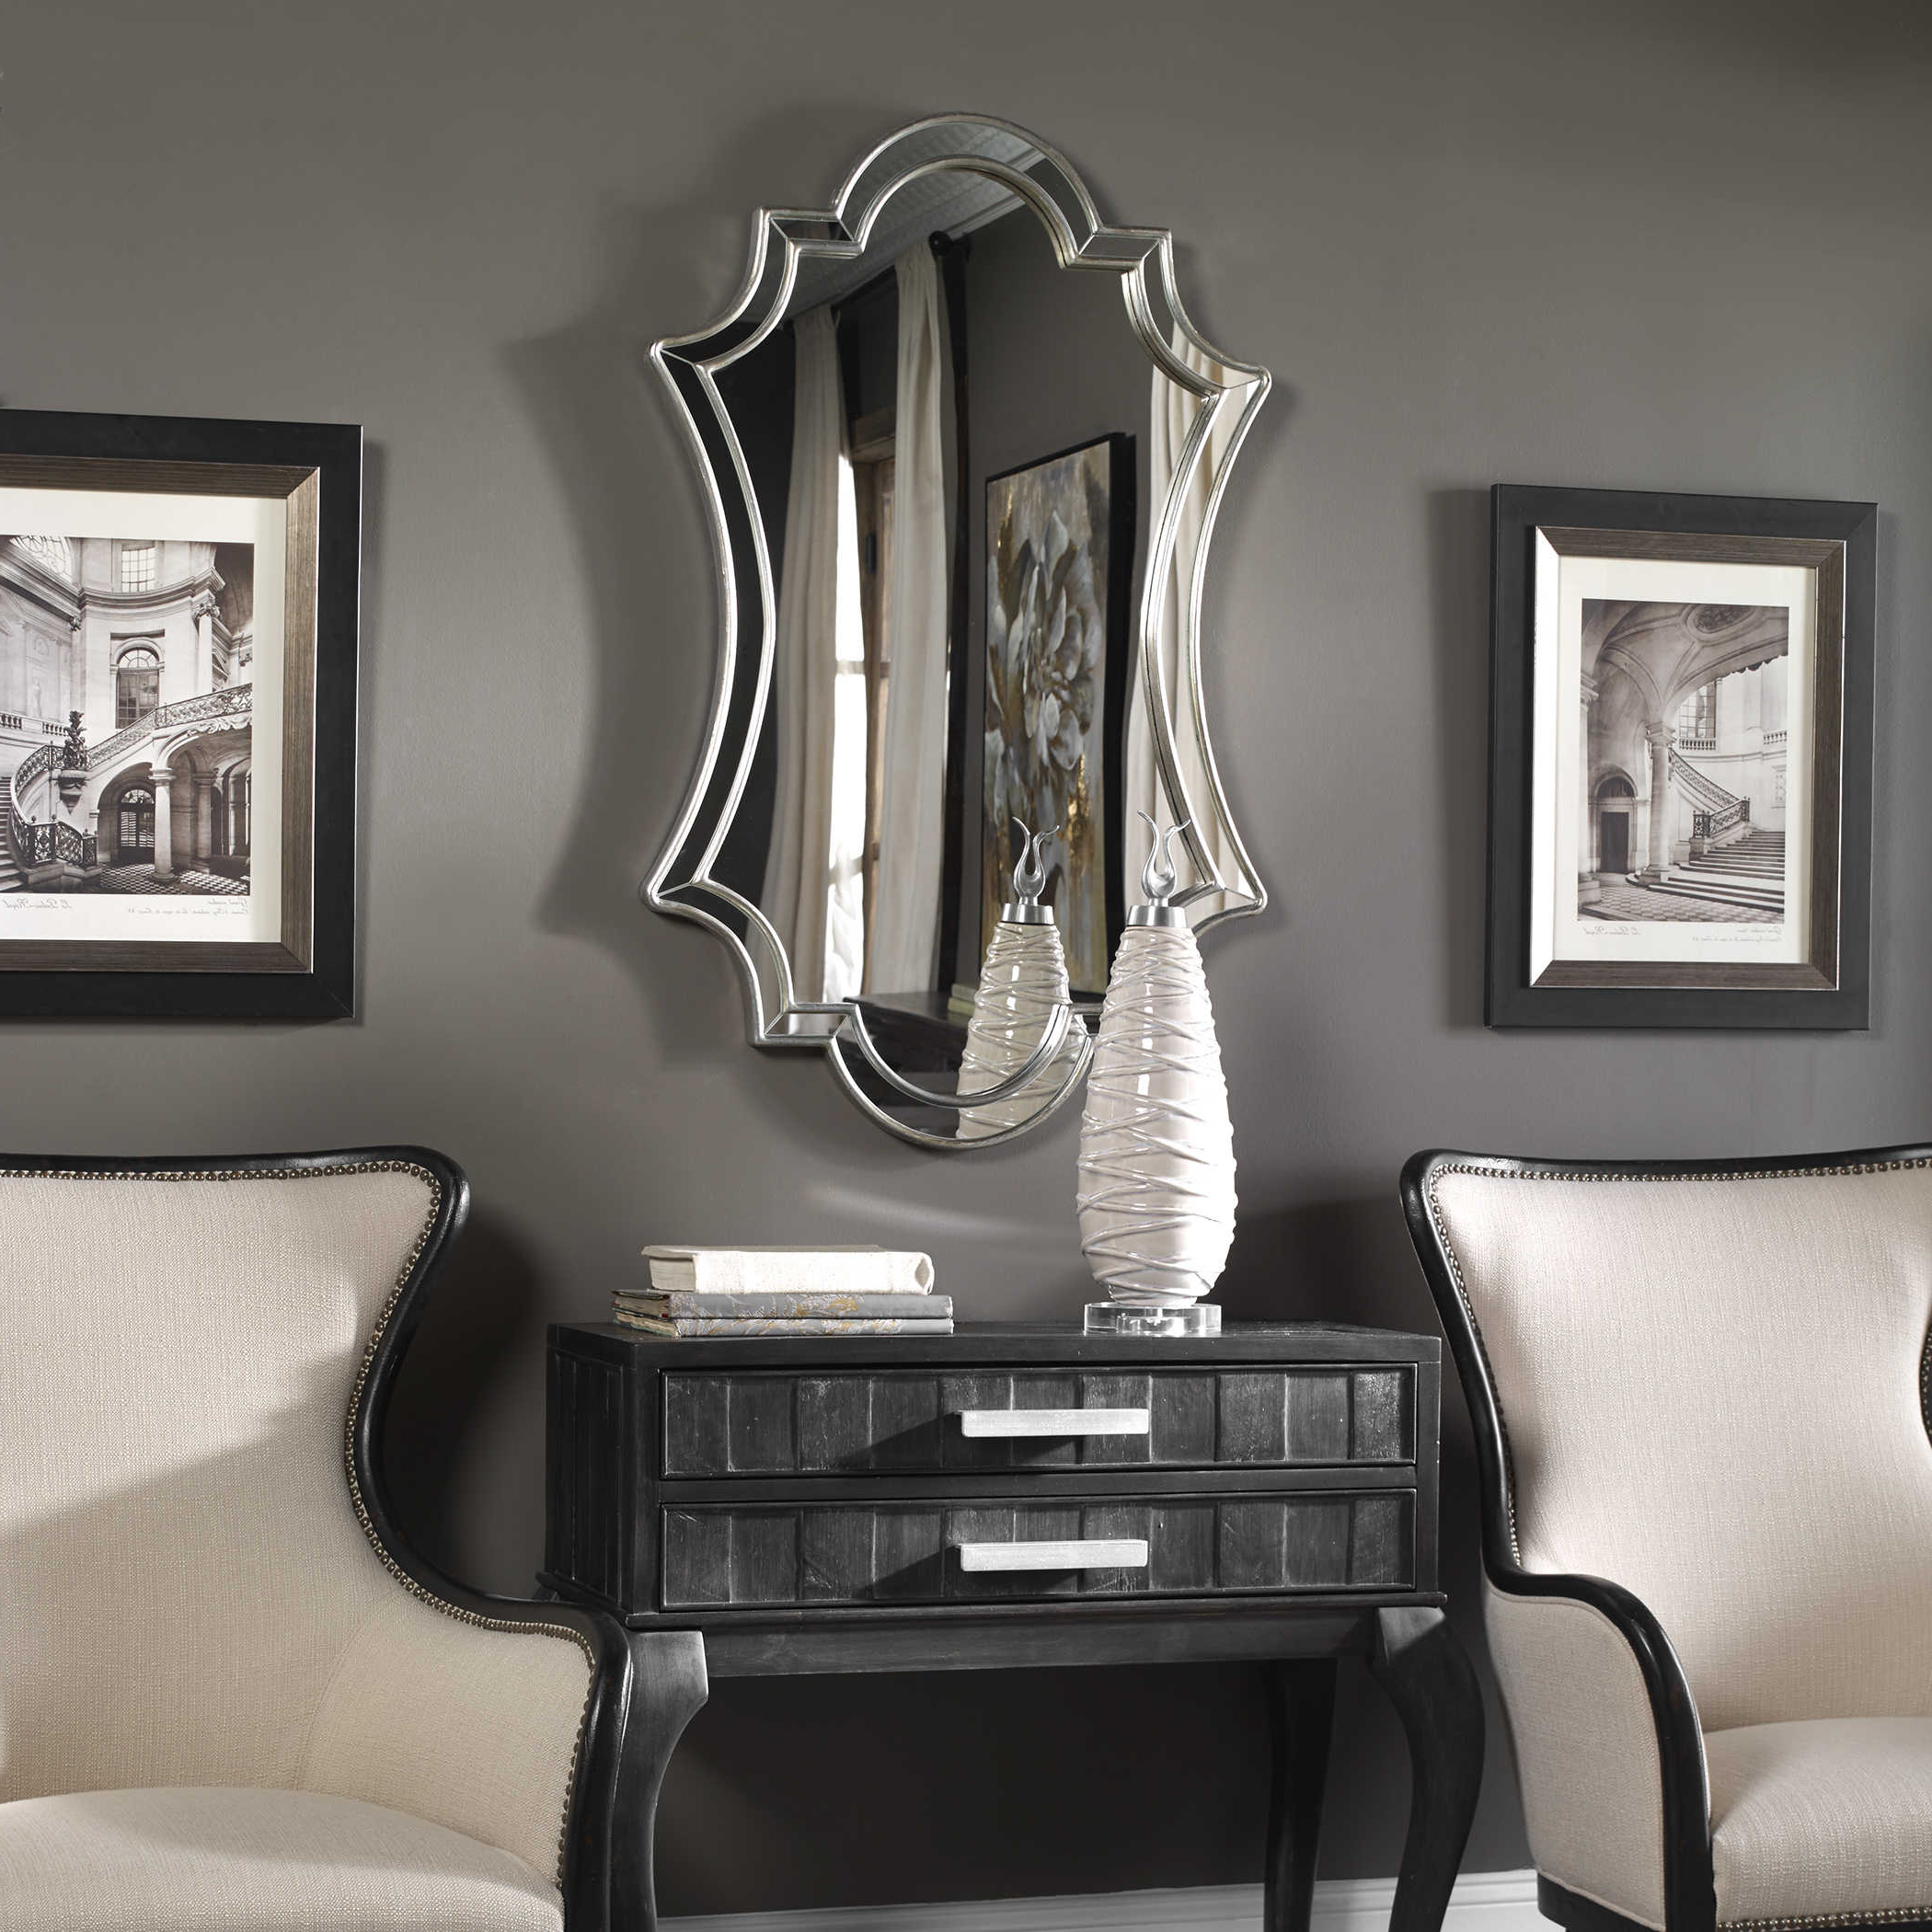 Uttermost Elara Antiqued Silver Wall Mirror Intended For Preferred Uttermost Wall Mirrors (View 10 of 20)